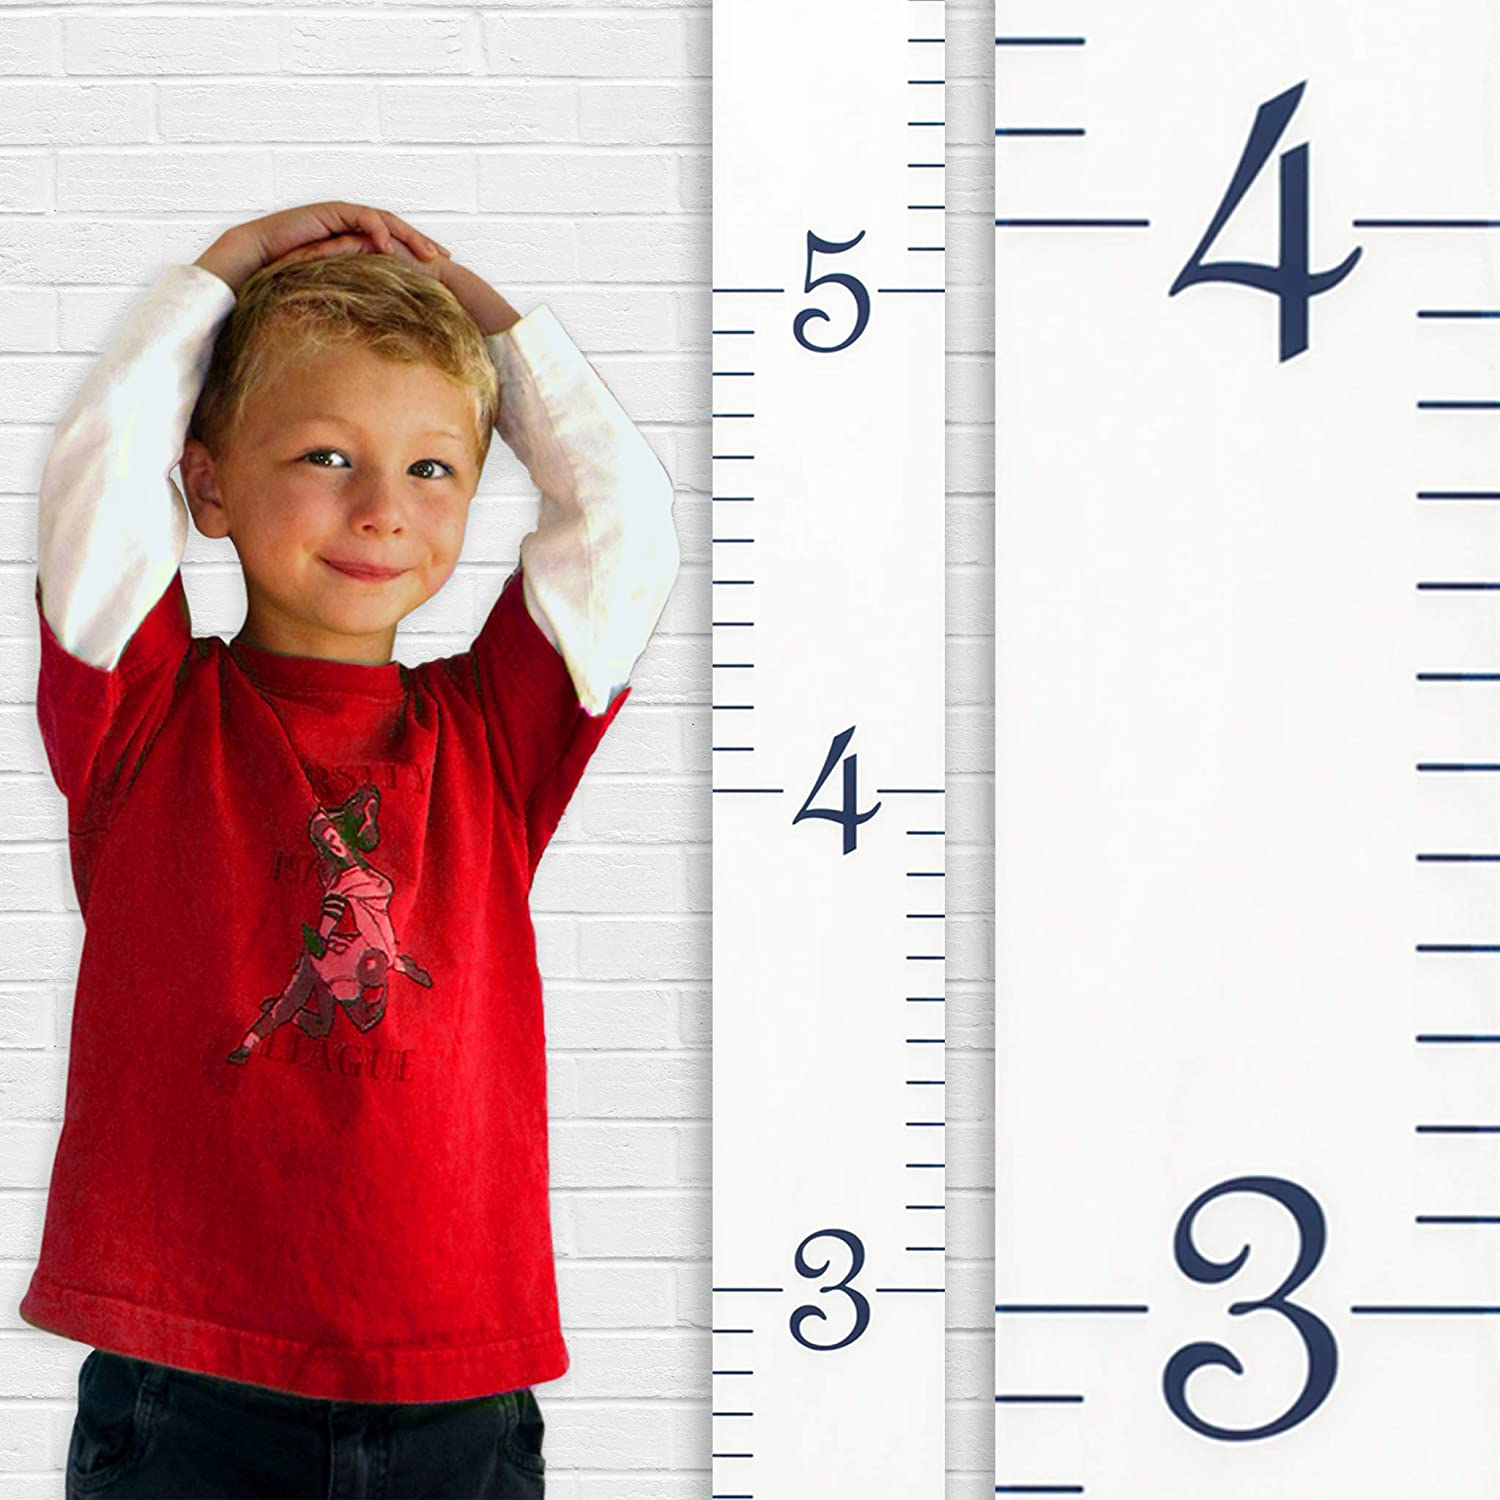 Growth Chart Art | Wooden Growth Chart Ruler Kids Height Chart for Boys + Girls | Measuring Kids Height Wall Décor | White with Black Numerals RULWBL